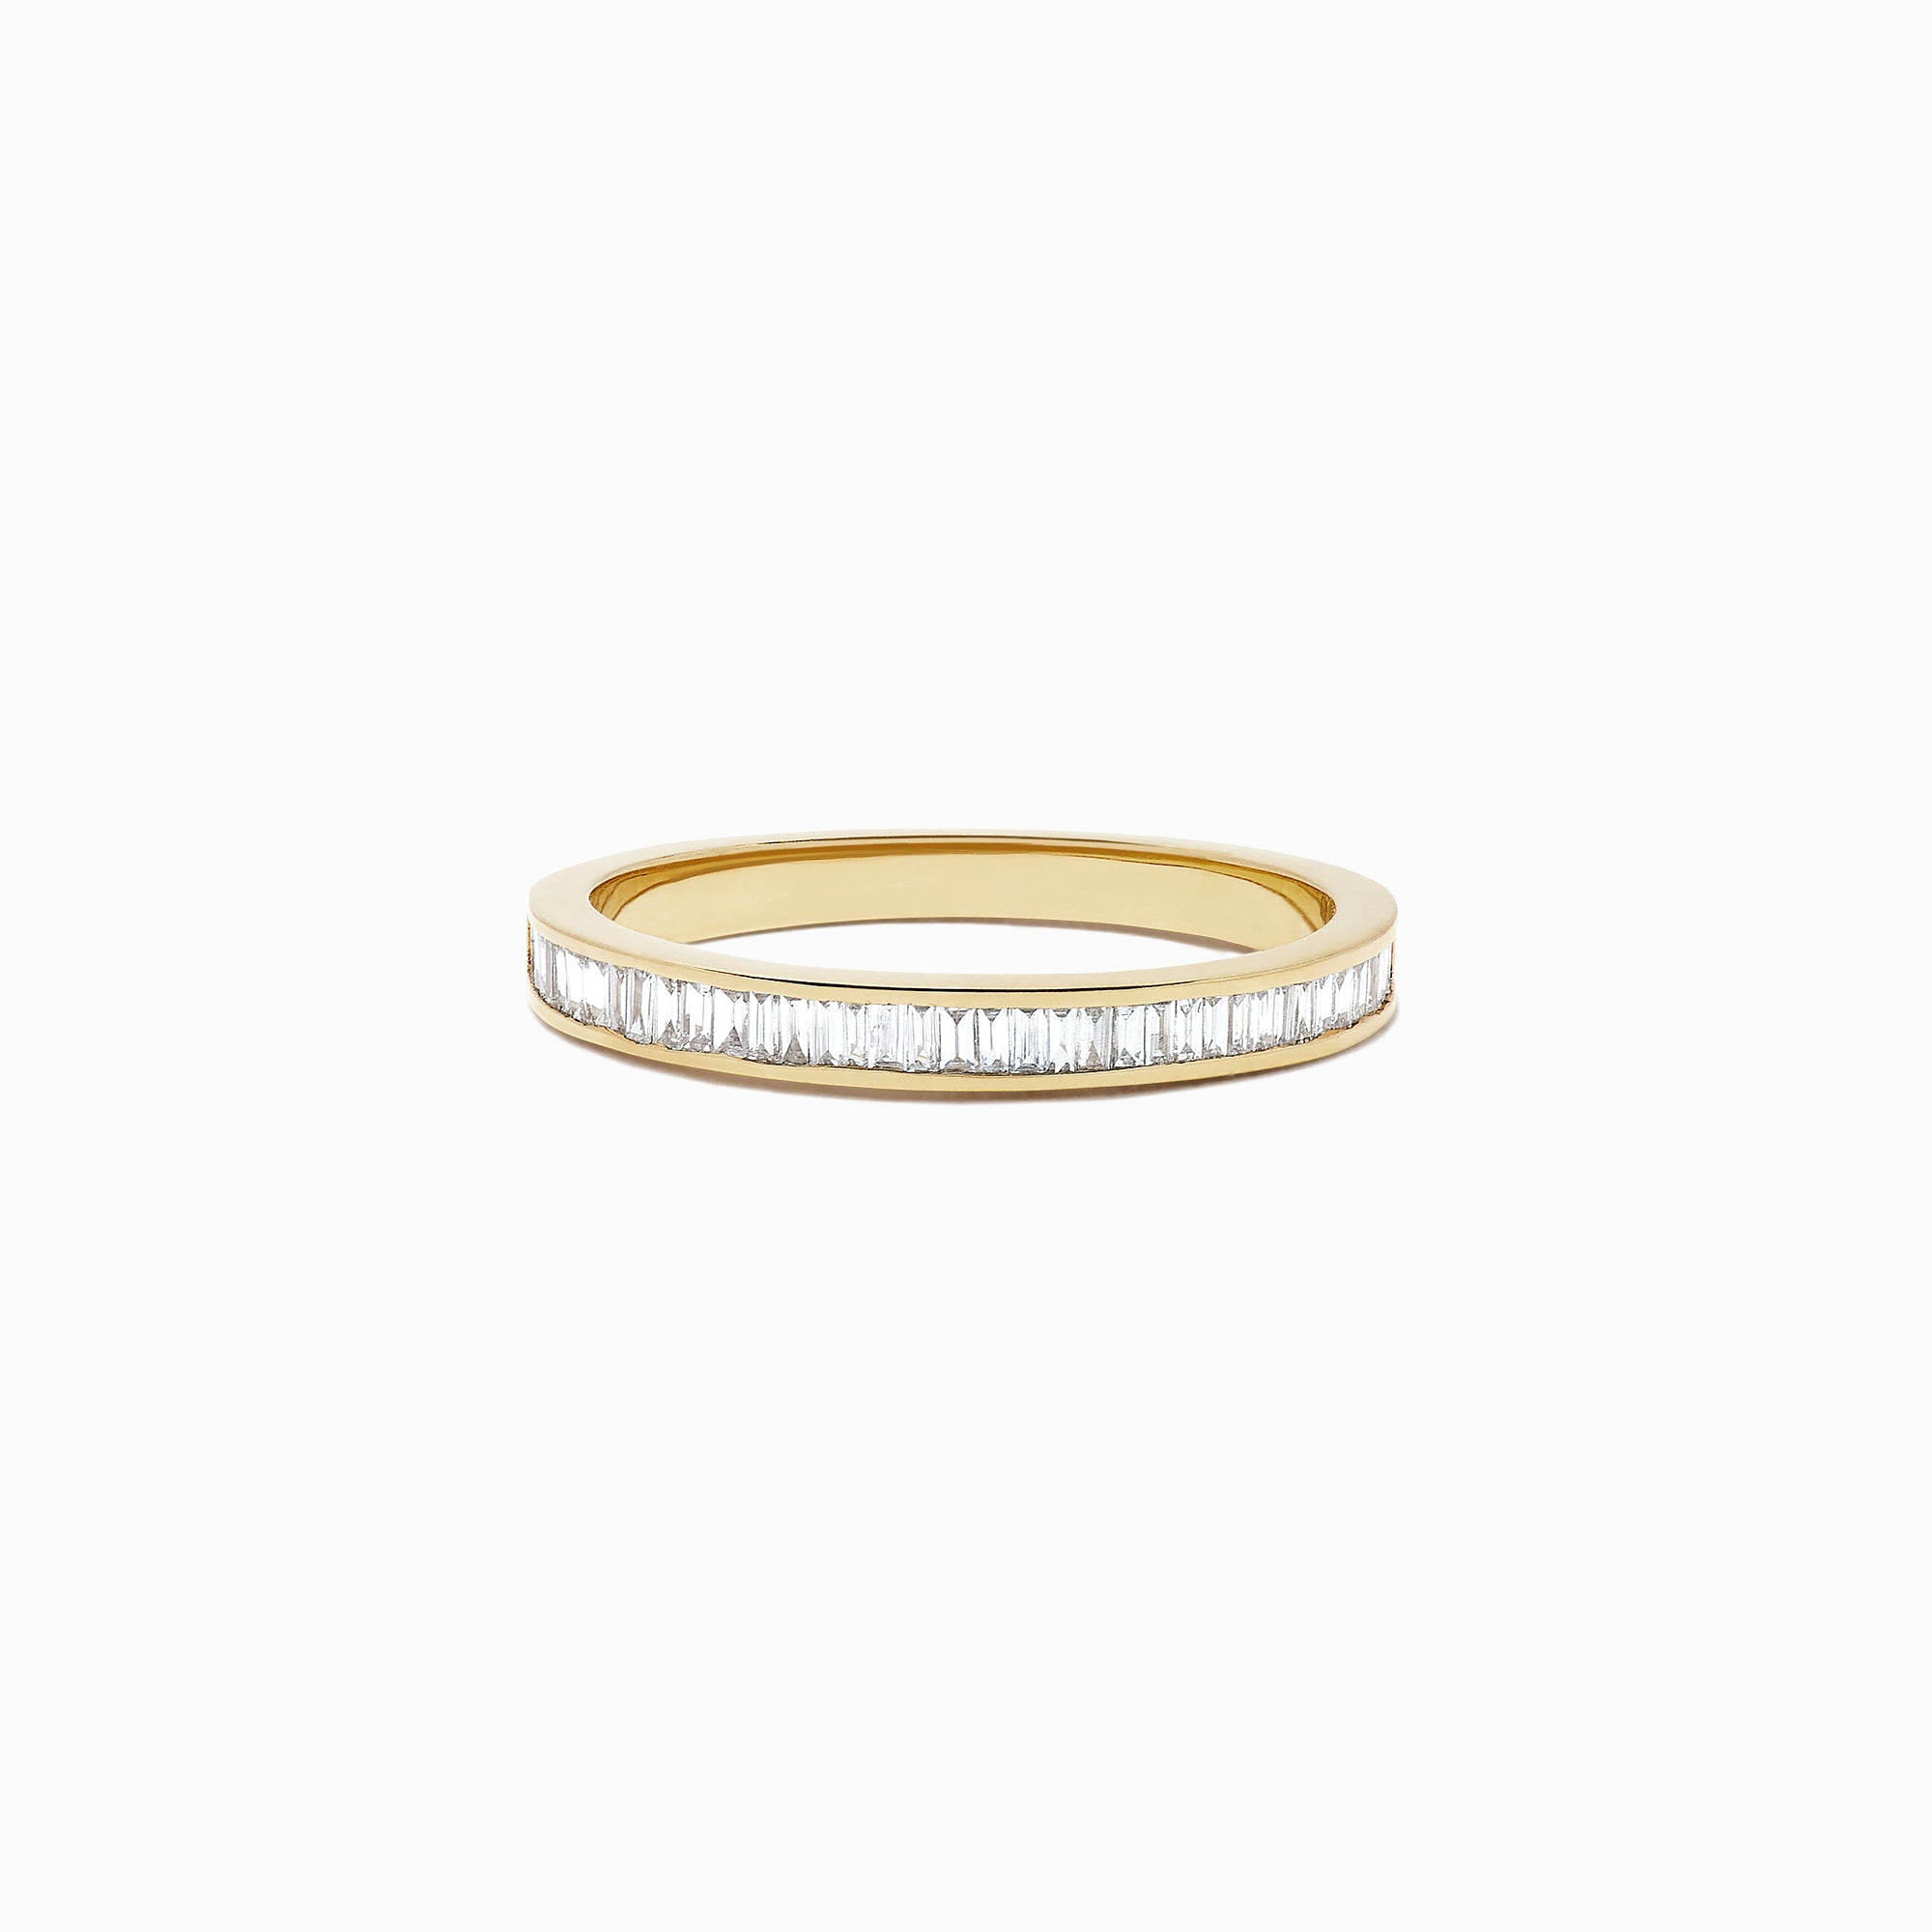 Effy D'Oro 14K Yellow Gold Channel Set Diamond Ring, 0.44 TCW